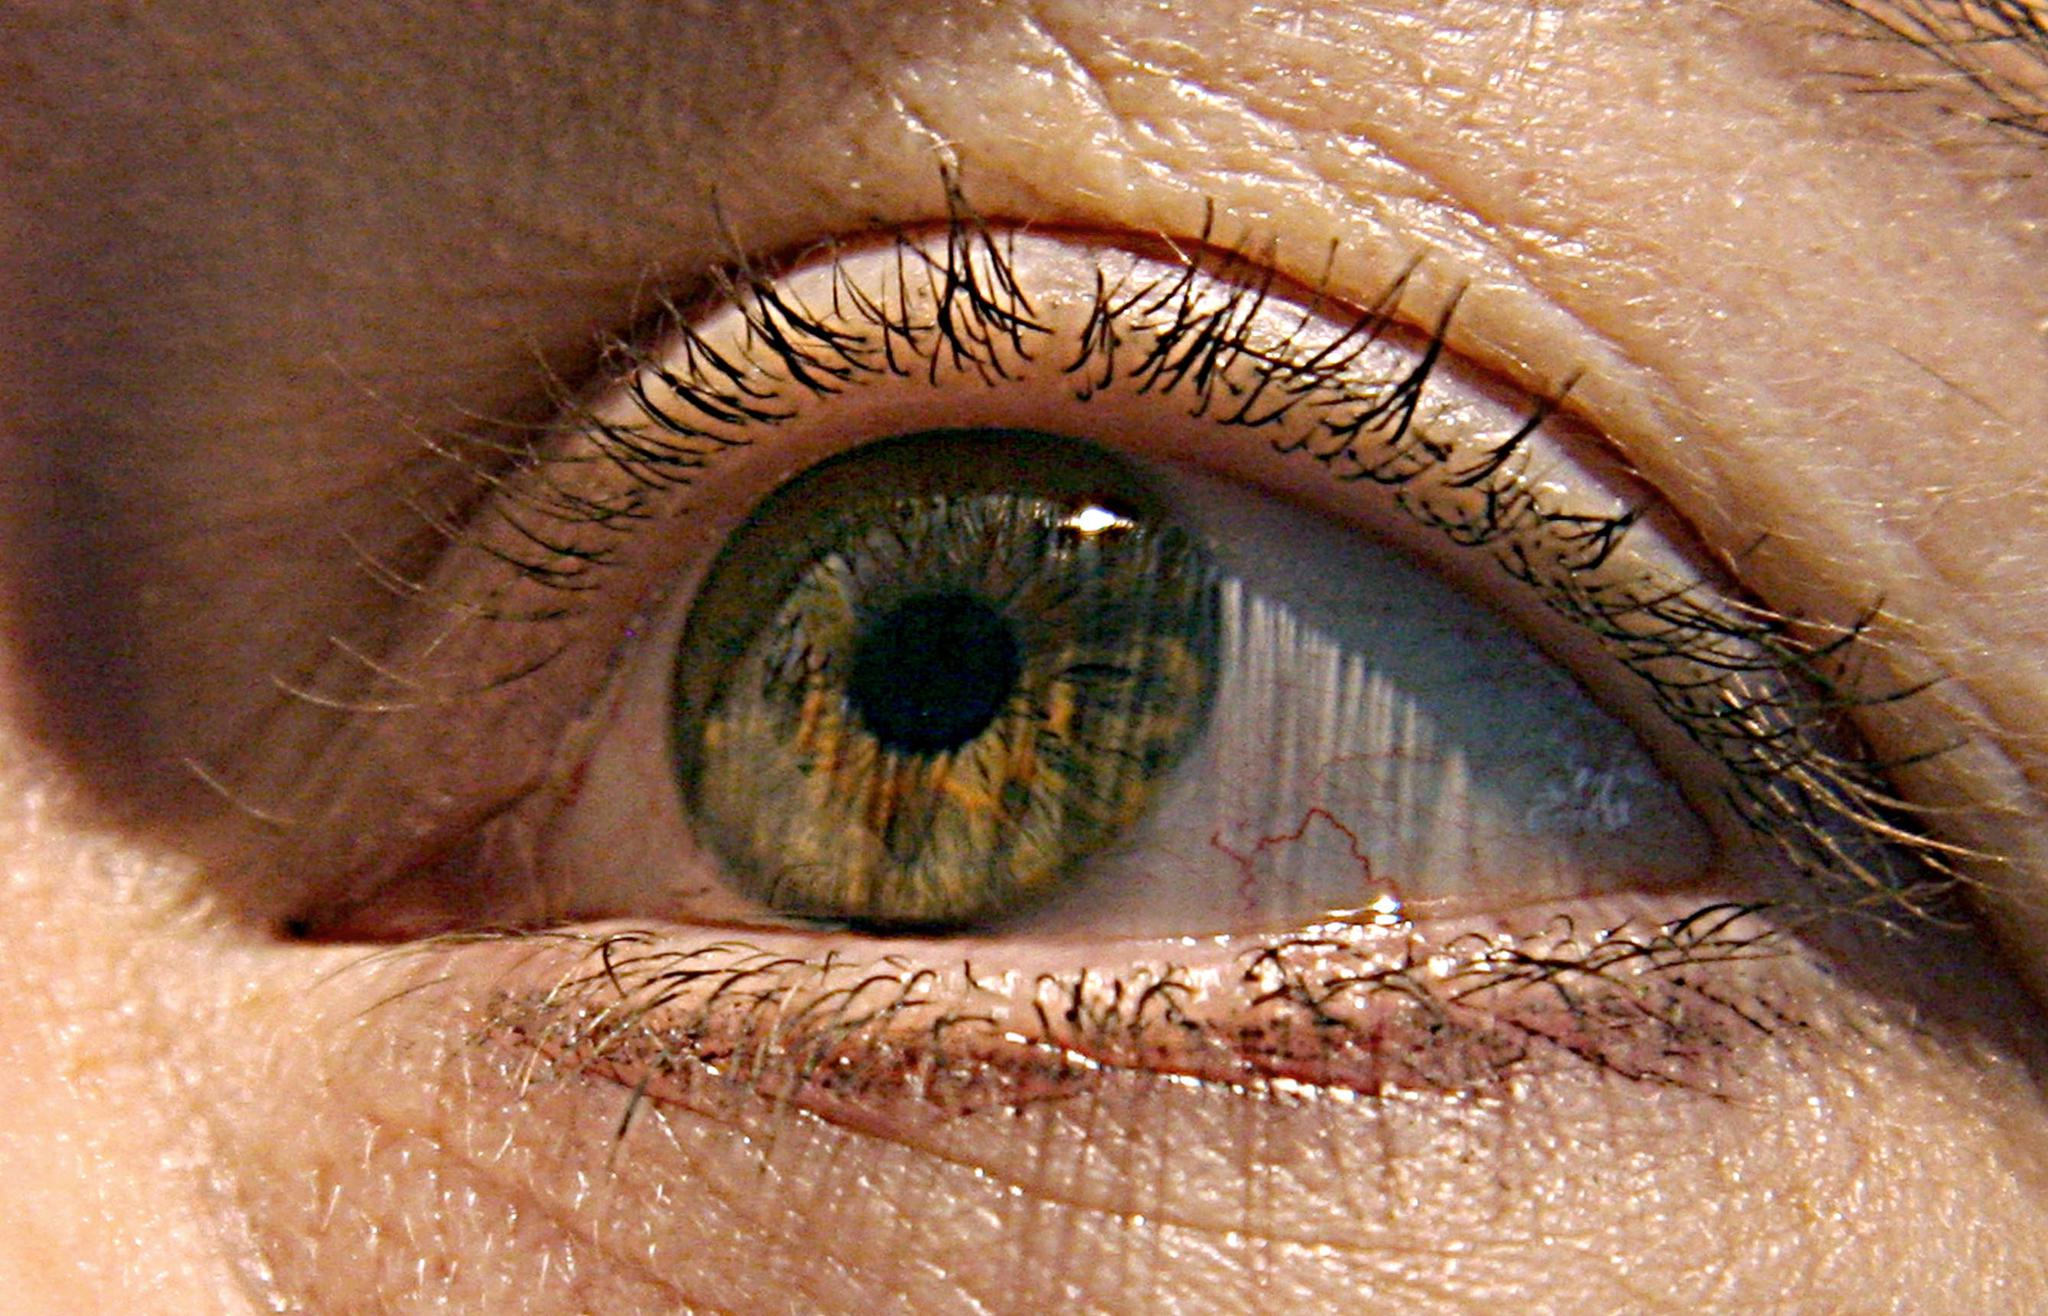 A new gene therapy called Luxturna was being considered by the FDA on Thursday to treat retinal dystrophy, which can lead to blindness. If approved, it would be the first-ever gene replacement therapy.